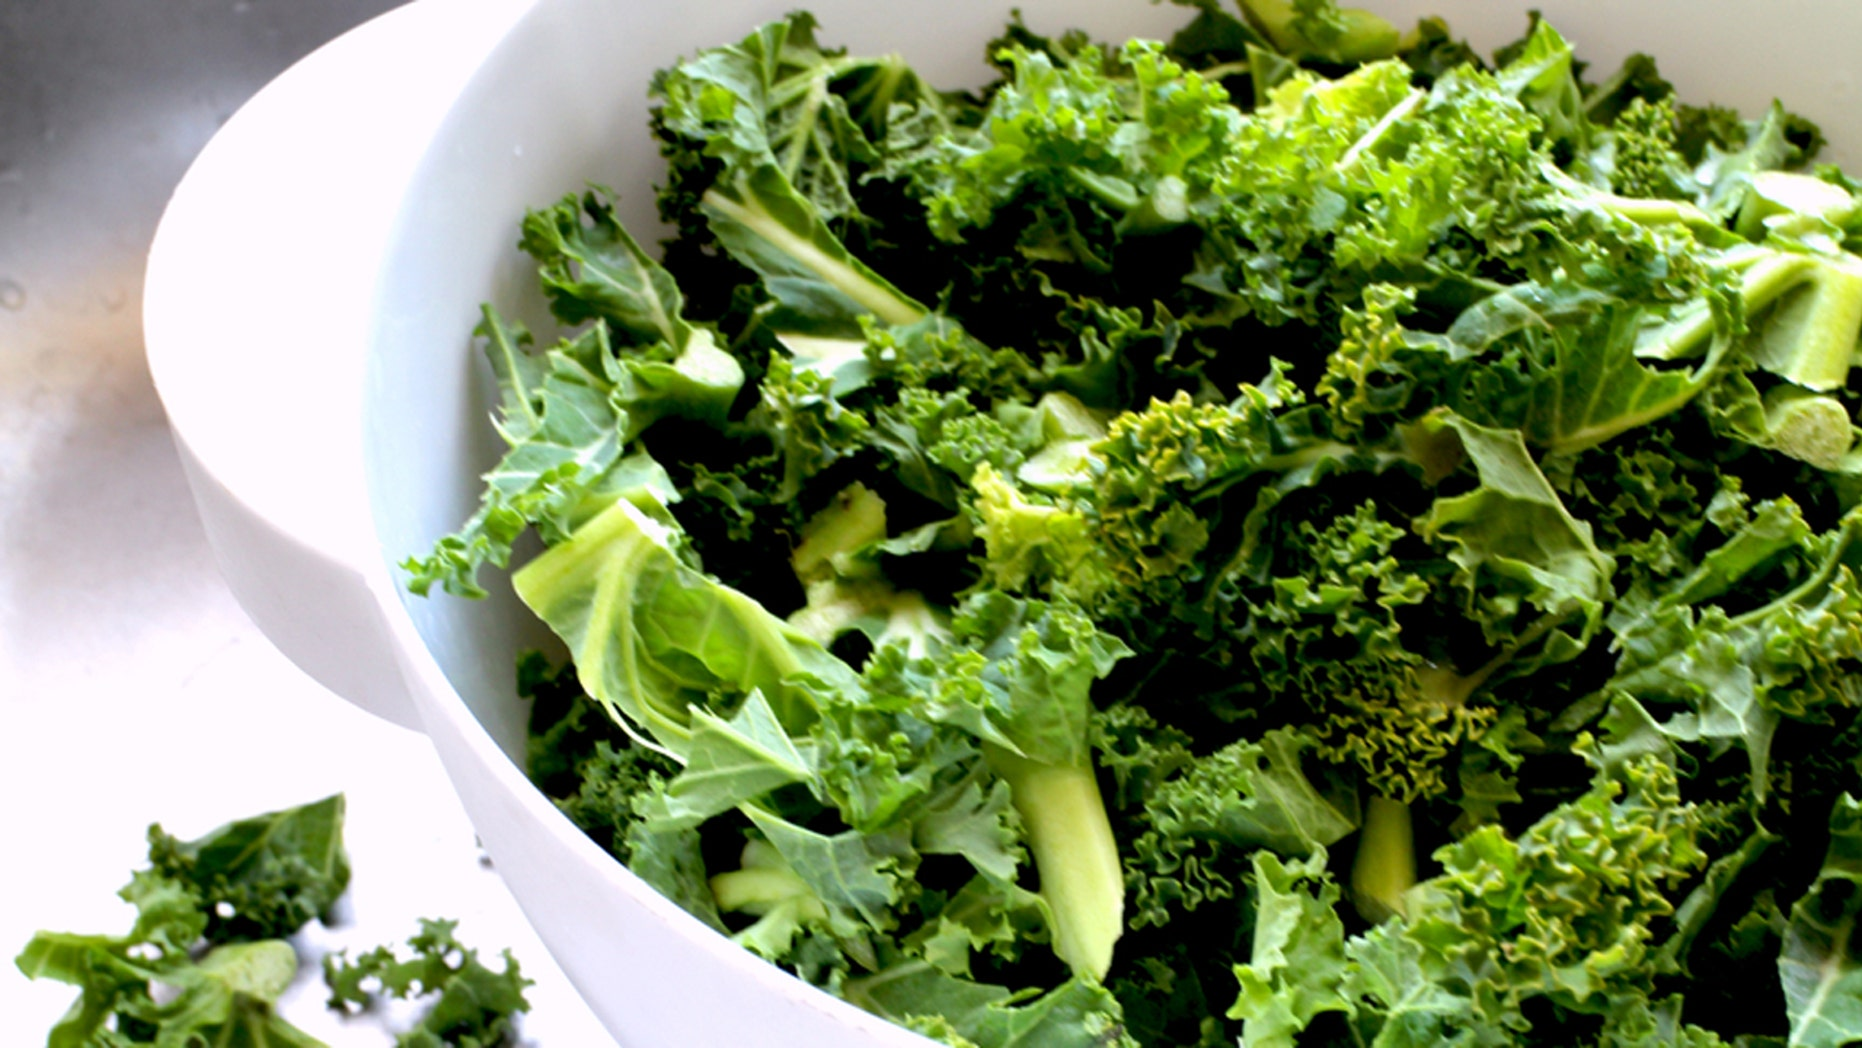 How much kale can you put away?